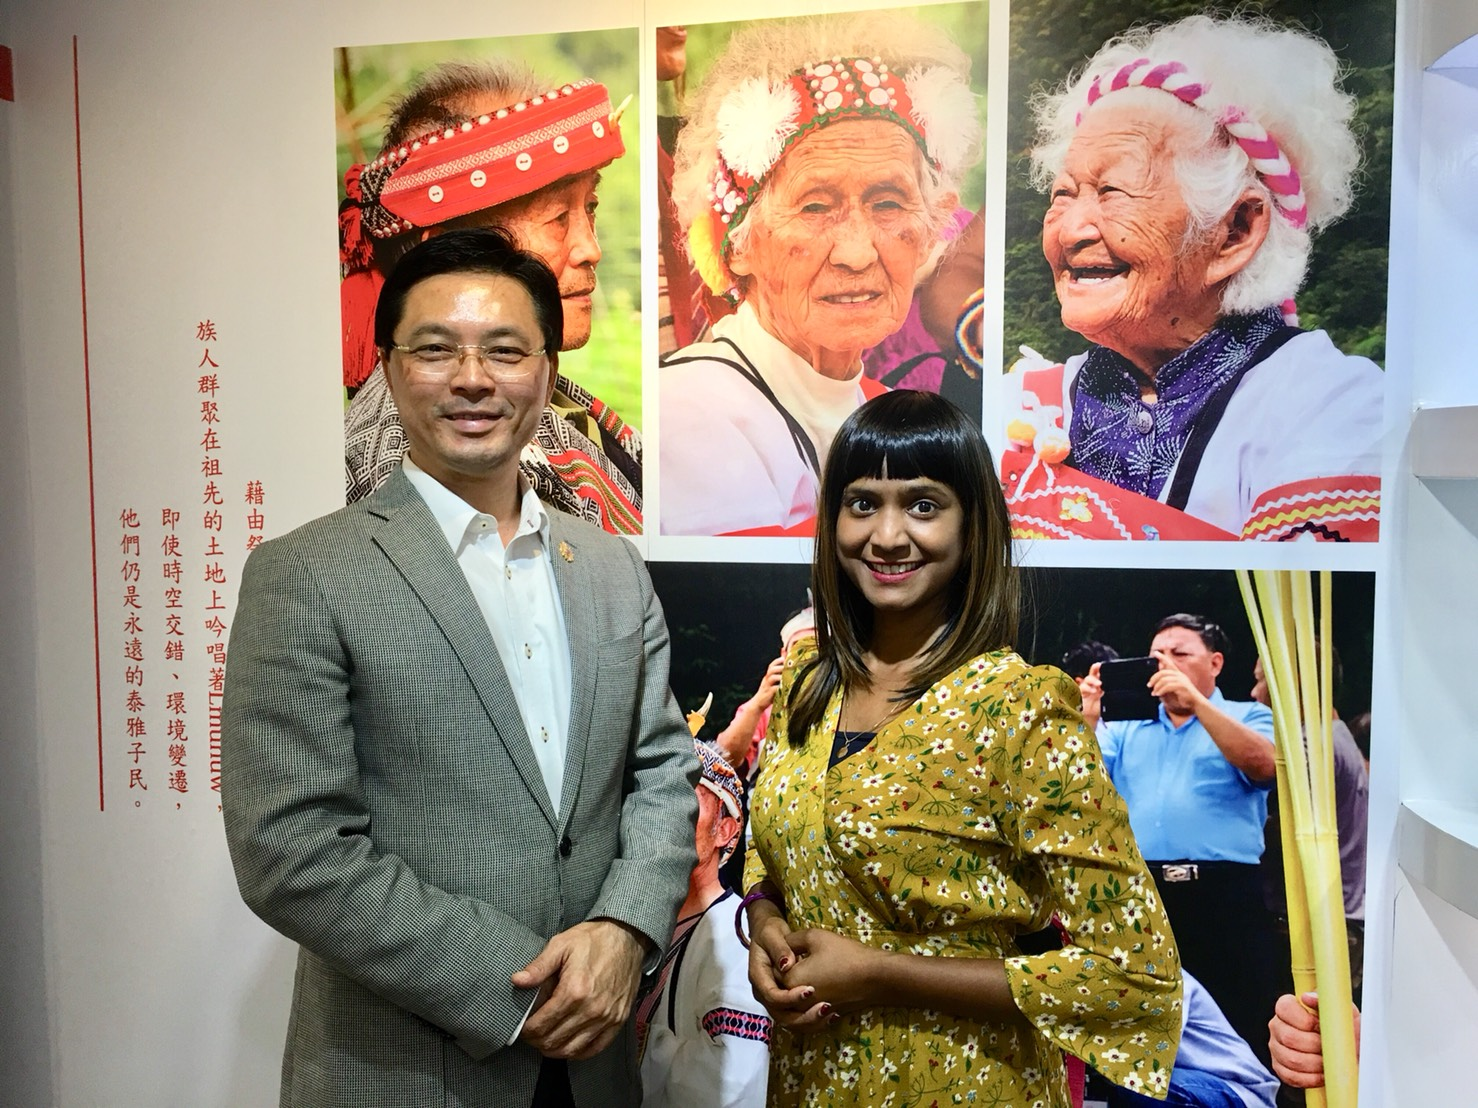 Reena Augustine poses with Feng Qifeng, chairman of Changhua Parent Union Advisory Council. (Image: Changhua Parent Union Advisory Council)